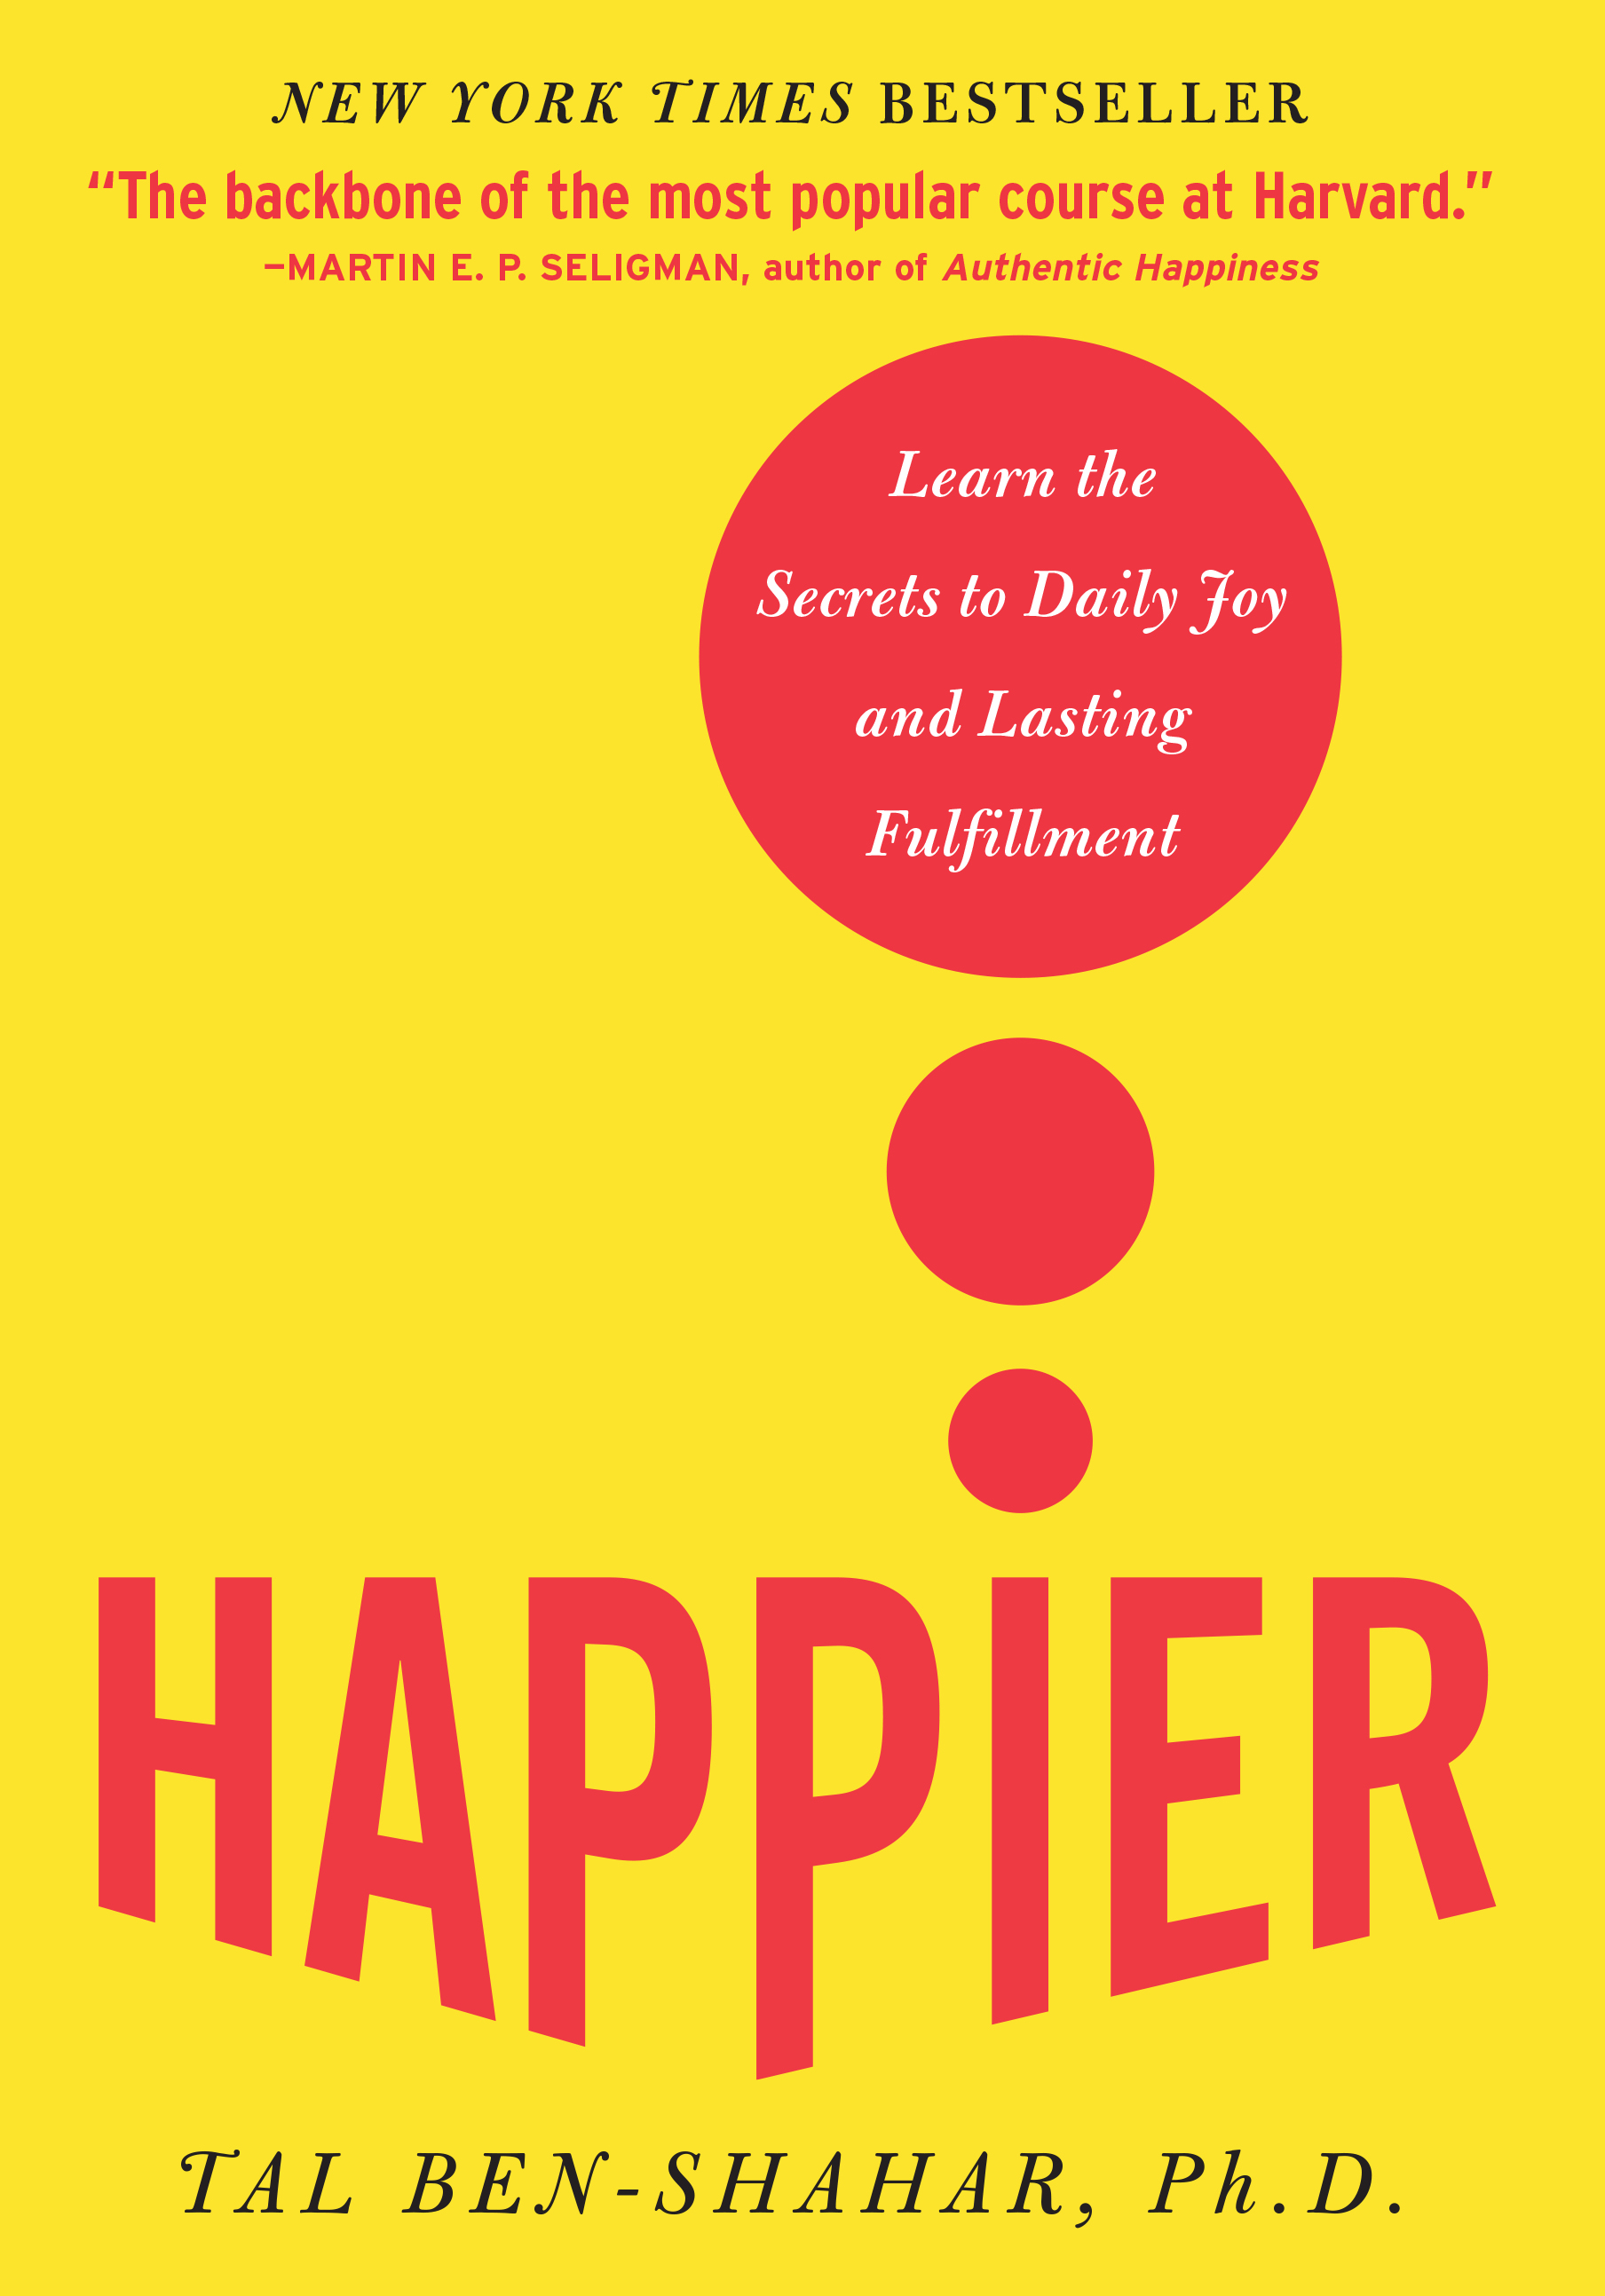 Happier Learn the Secrets to Daily Joy and Lasting Fulfillment